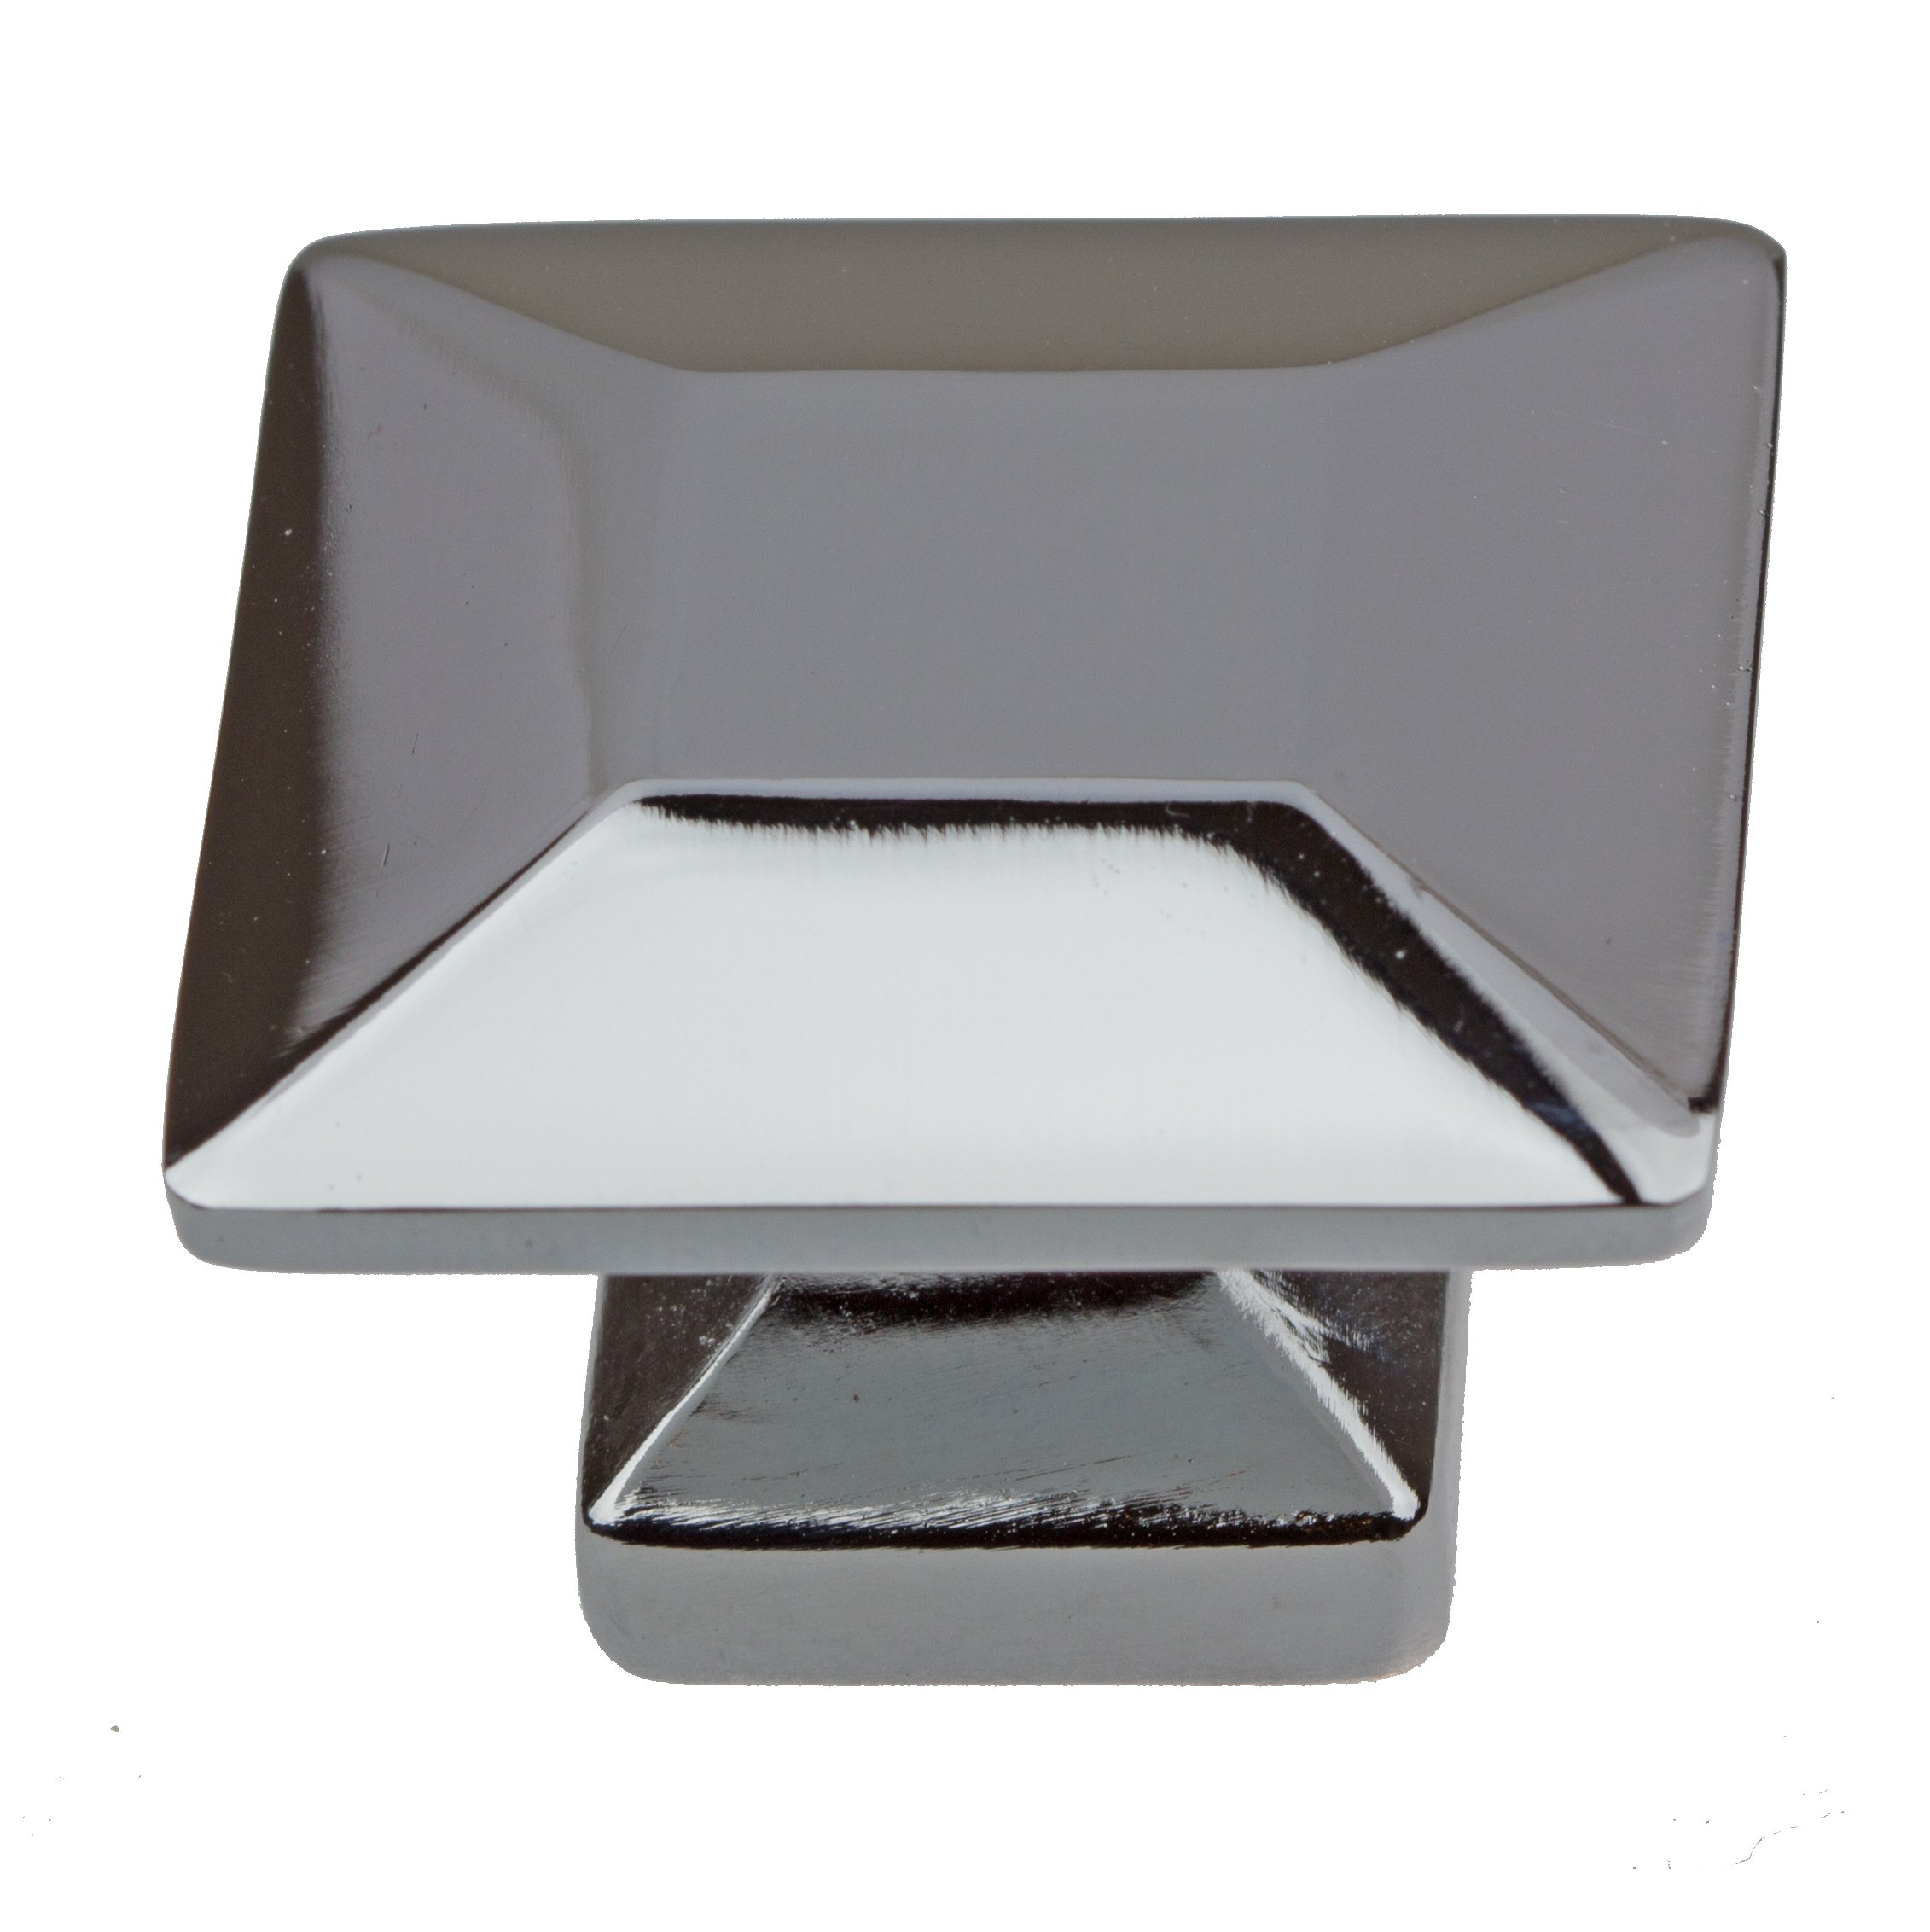 GlideRite Hardware 5101-PC-100 1.375 inch Polished Chrome Square Cabinet Knobs 100 Pack